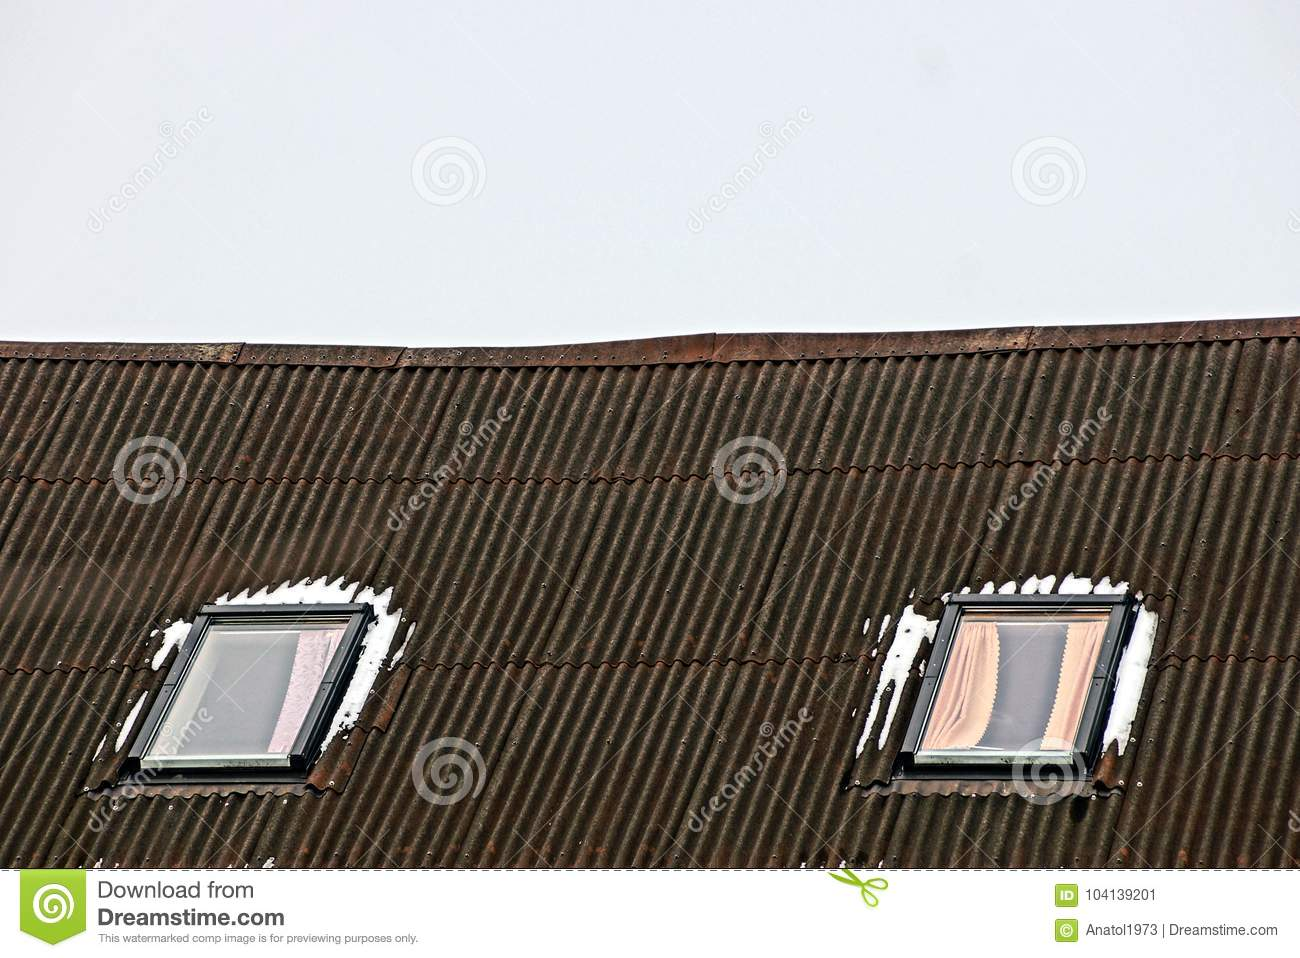 Two windows in the snow on a slate roof against the sky